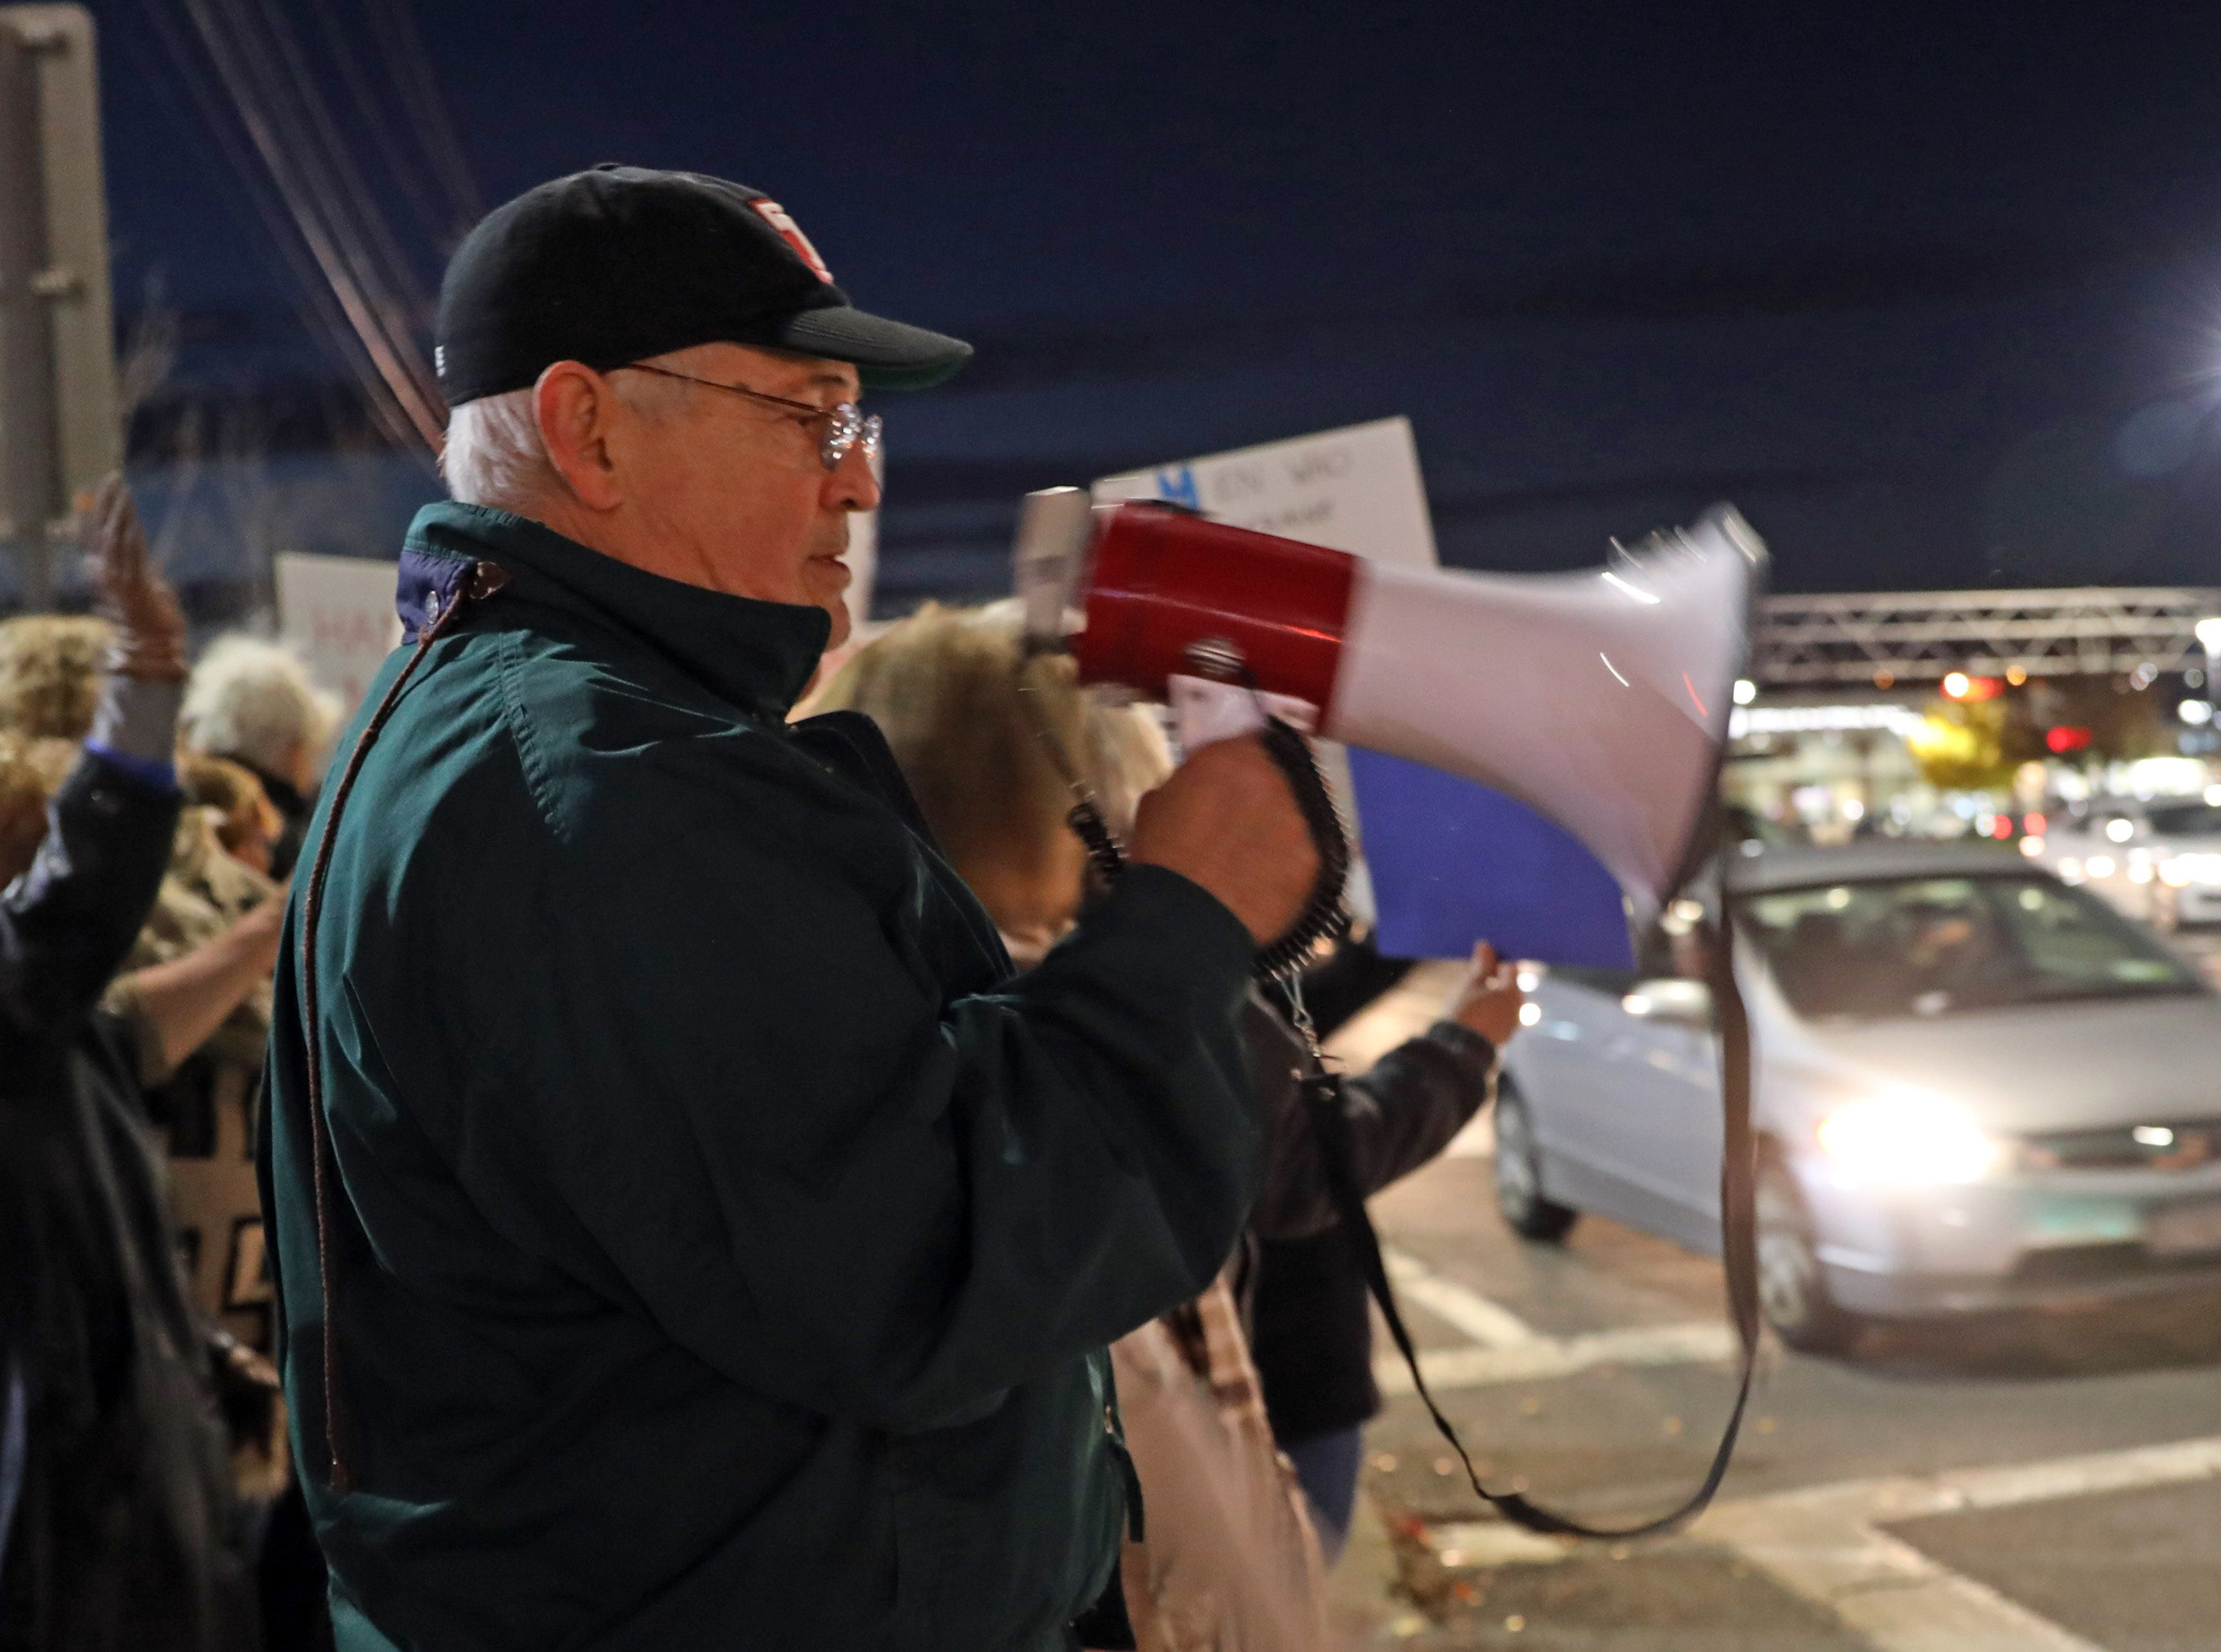 Greg Julian of Stony Point rallys for the protection of Robert Mueller's investigation on Route 59 in Nanuet Nov. 8, 2018. In the wake of U.S. Attorney General Jeff Sessions being fired on Wednesday Local Residents gather to rally for the protection of Robert Mueller's investigation.